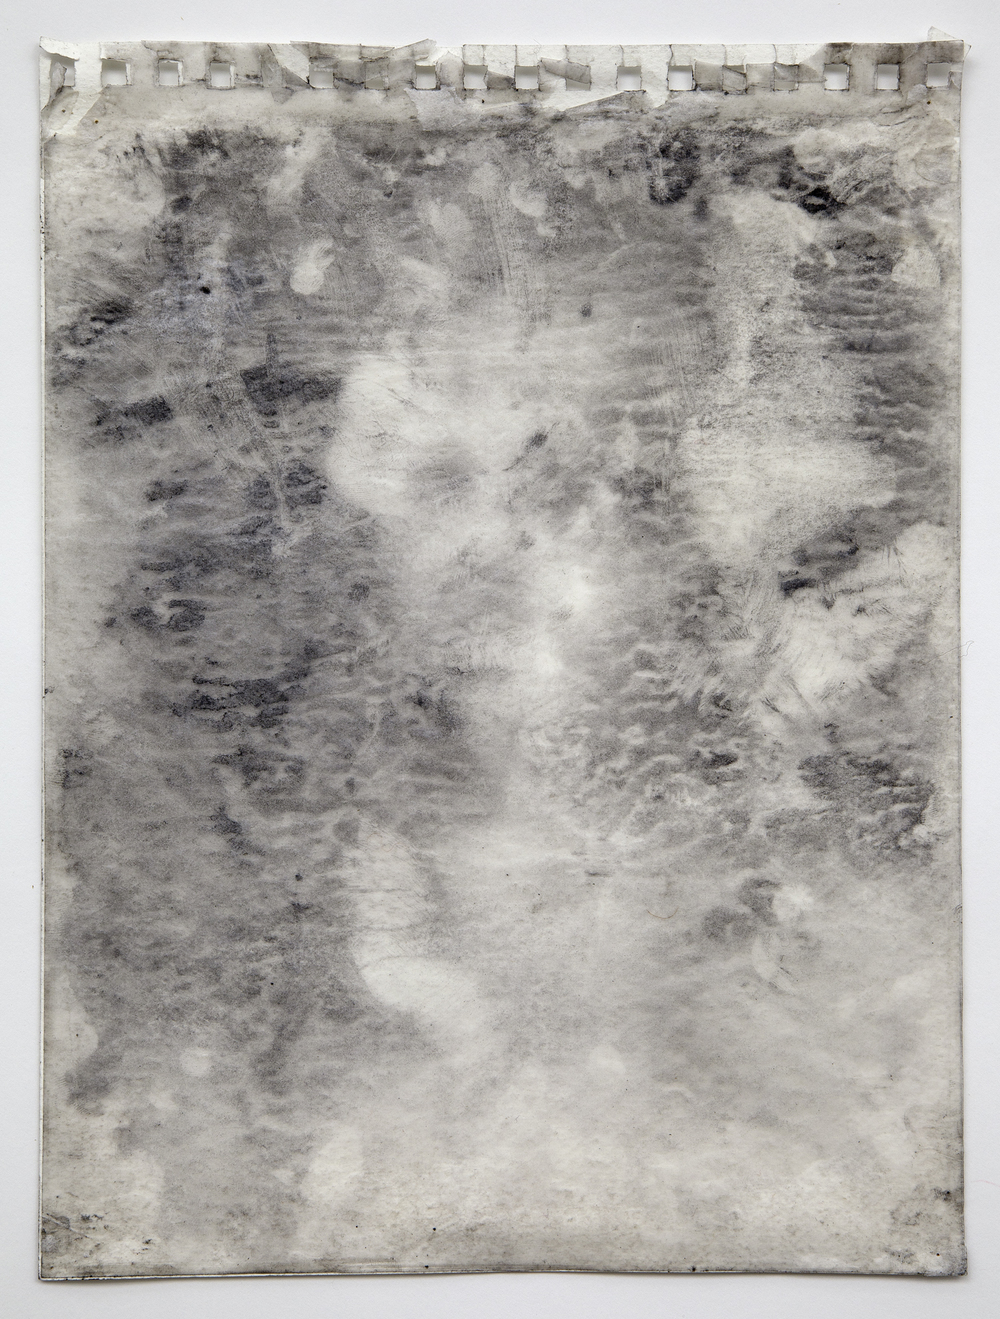 Interleaf Drawing (after Goya), 2012